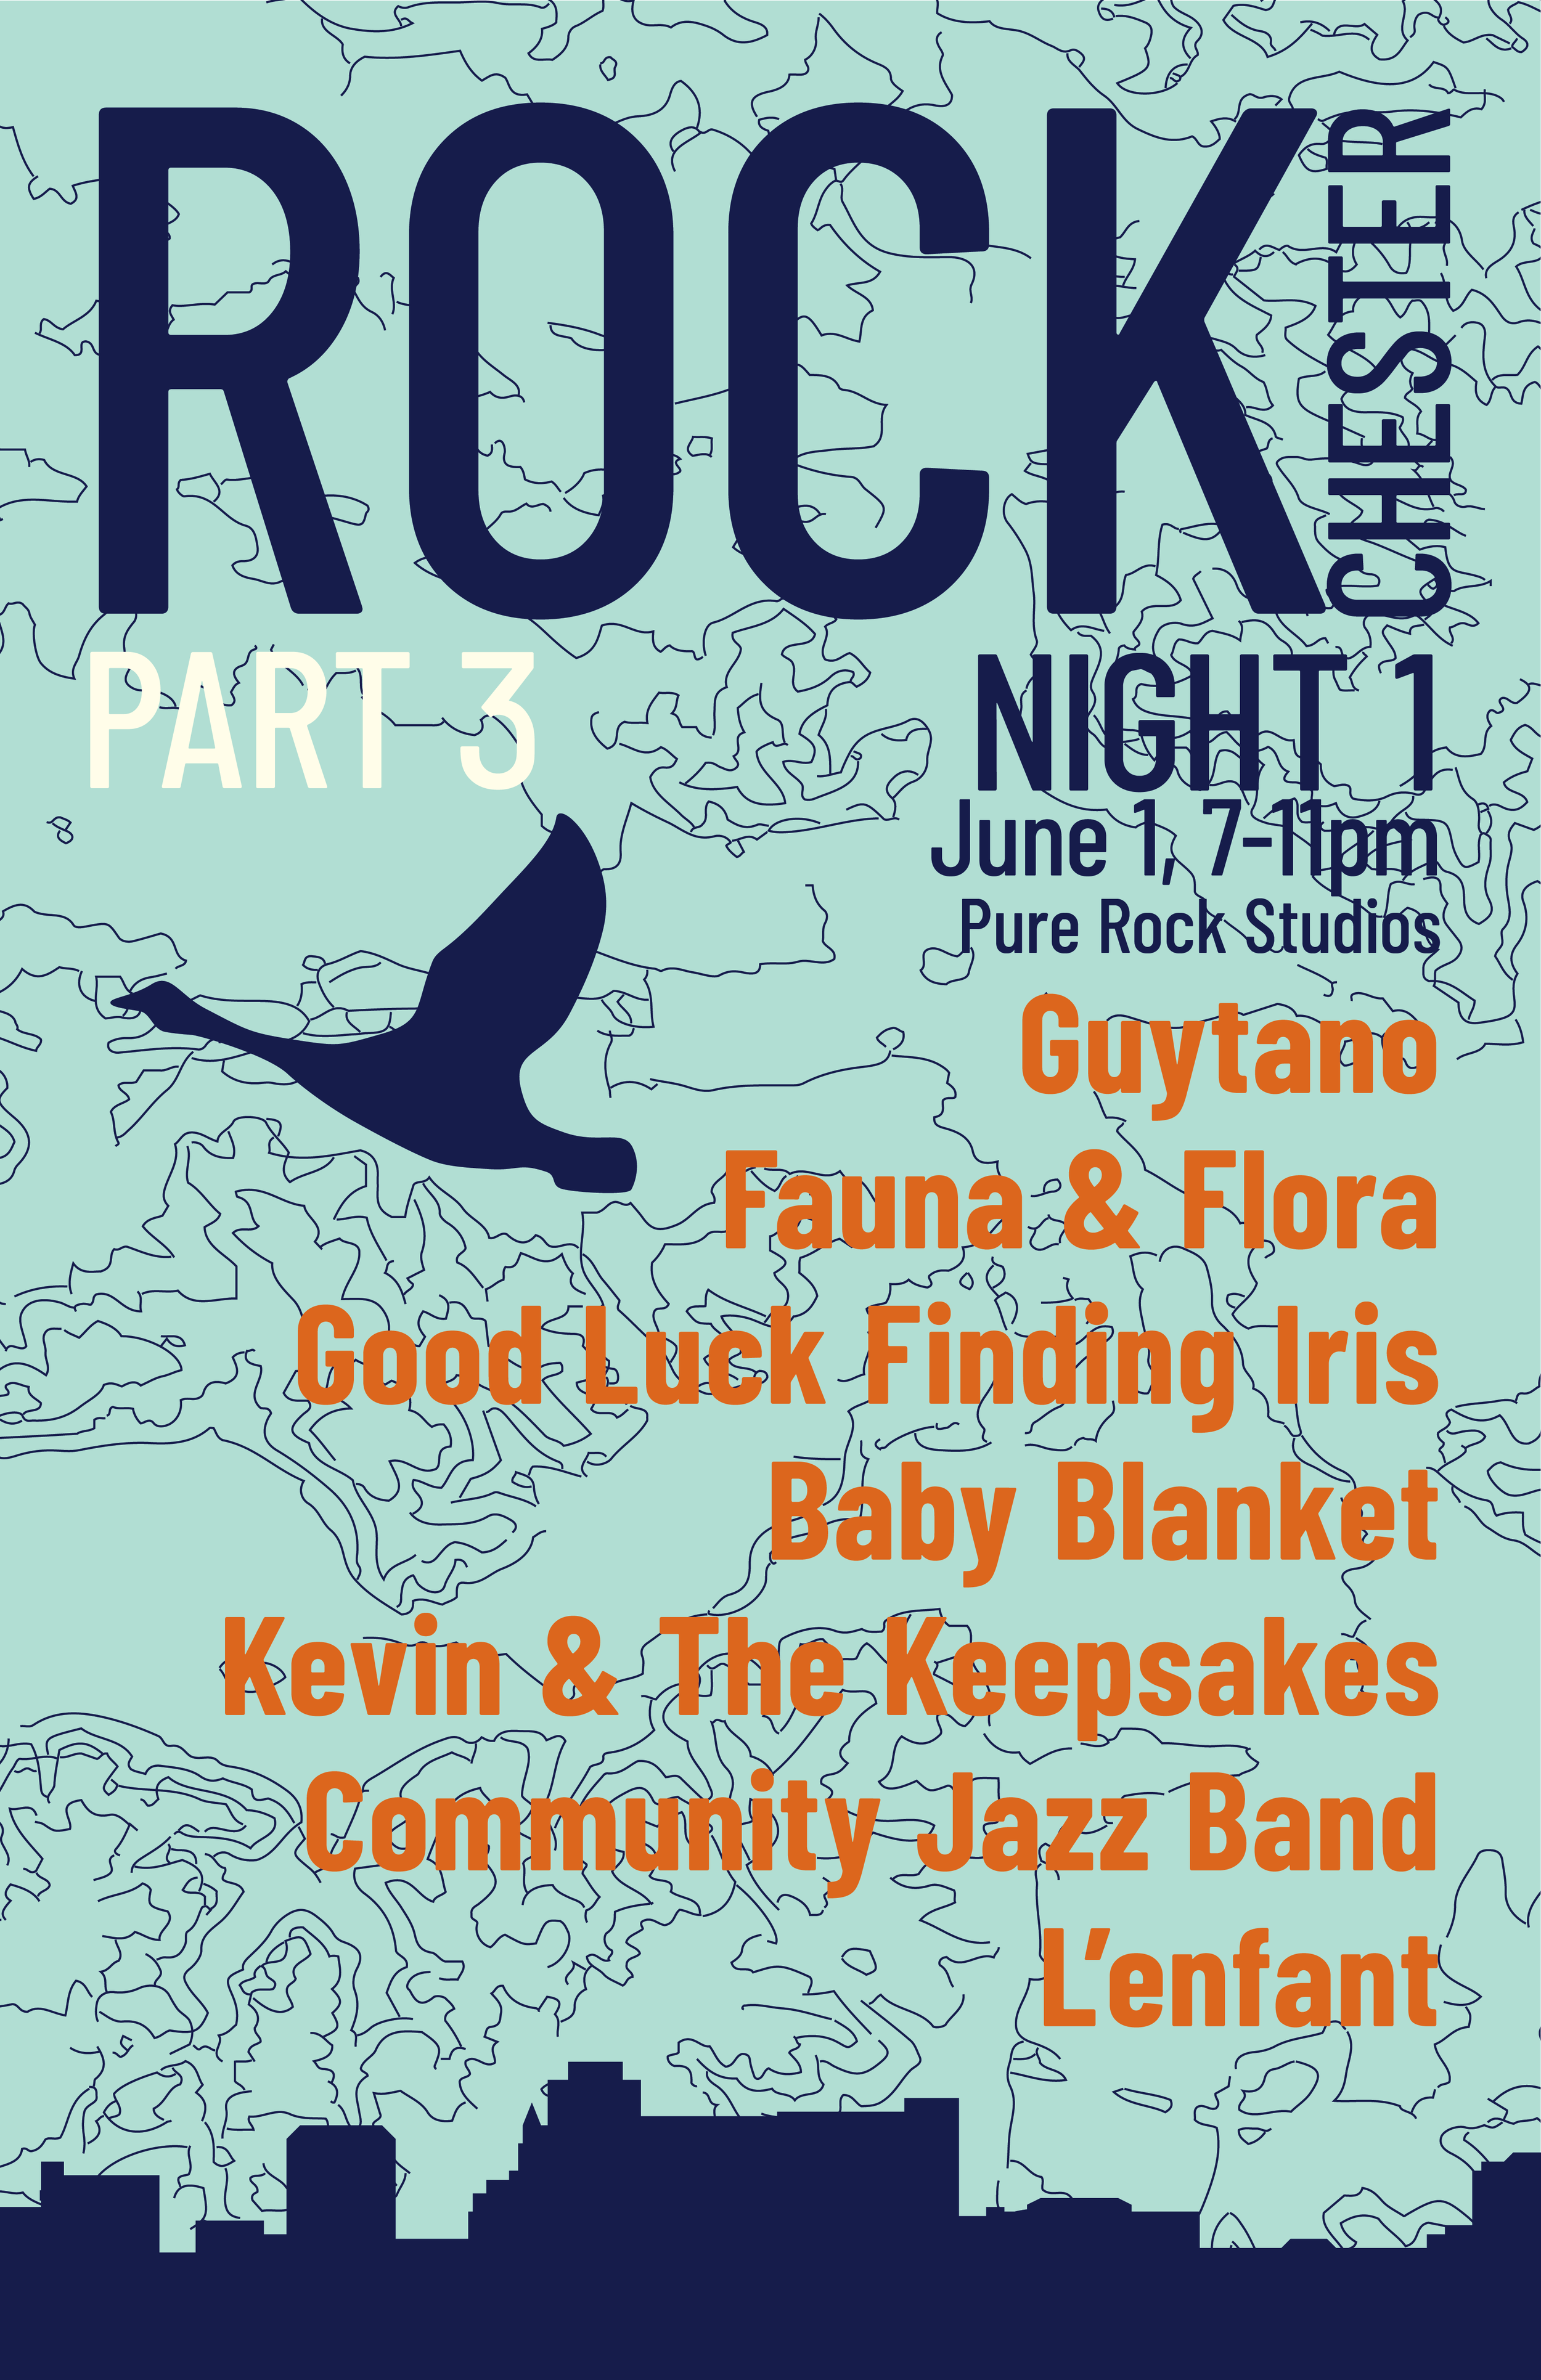 rockchester 2018_night 1 lineup copy.png